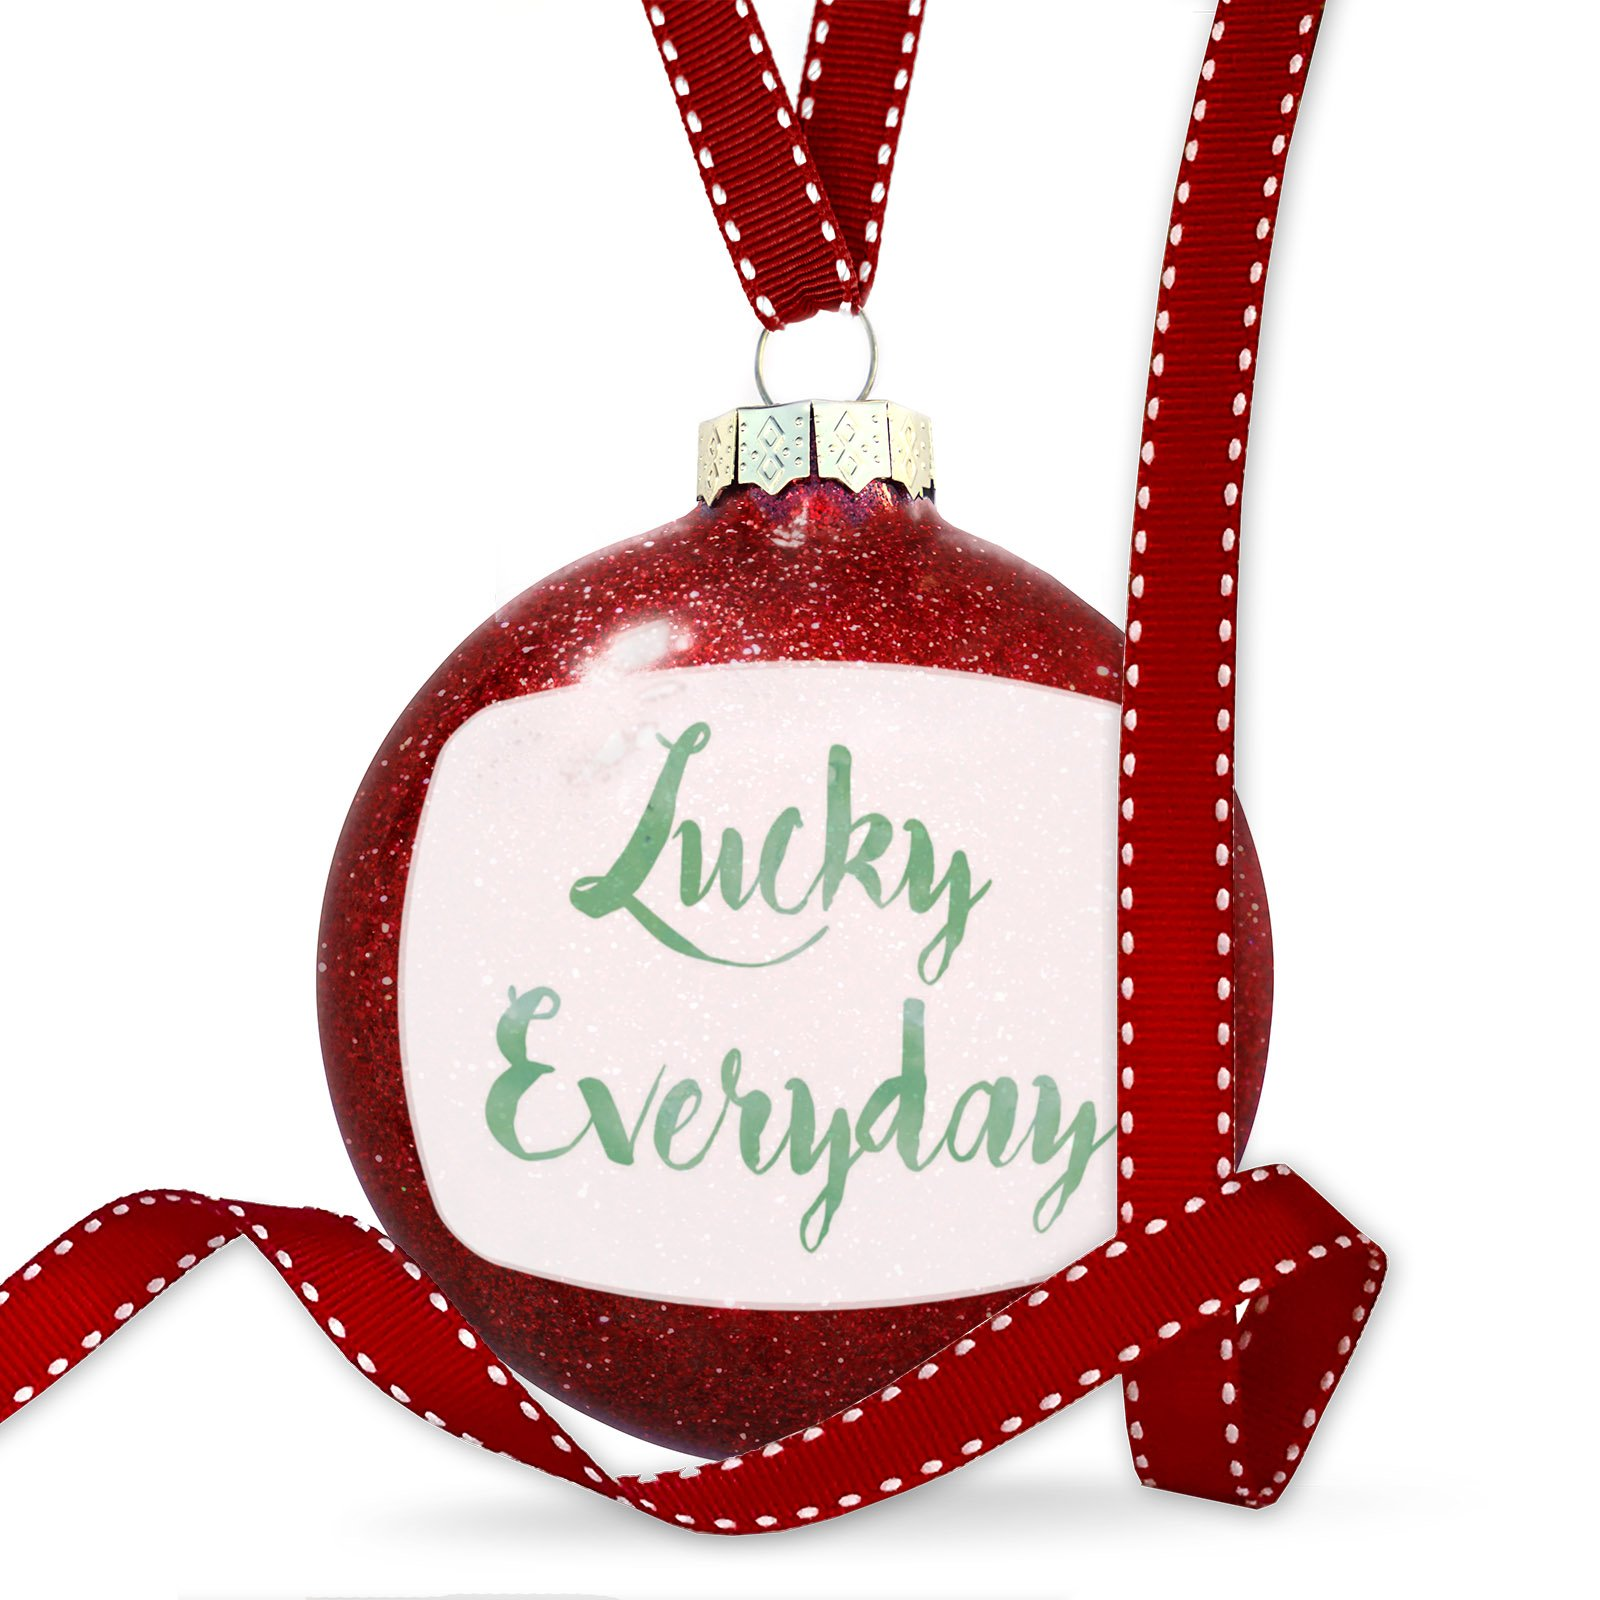 Christmas Decoration Lucky Everyday St. Patrick's Day Green Watercolor Ornament by NEONBLOND